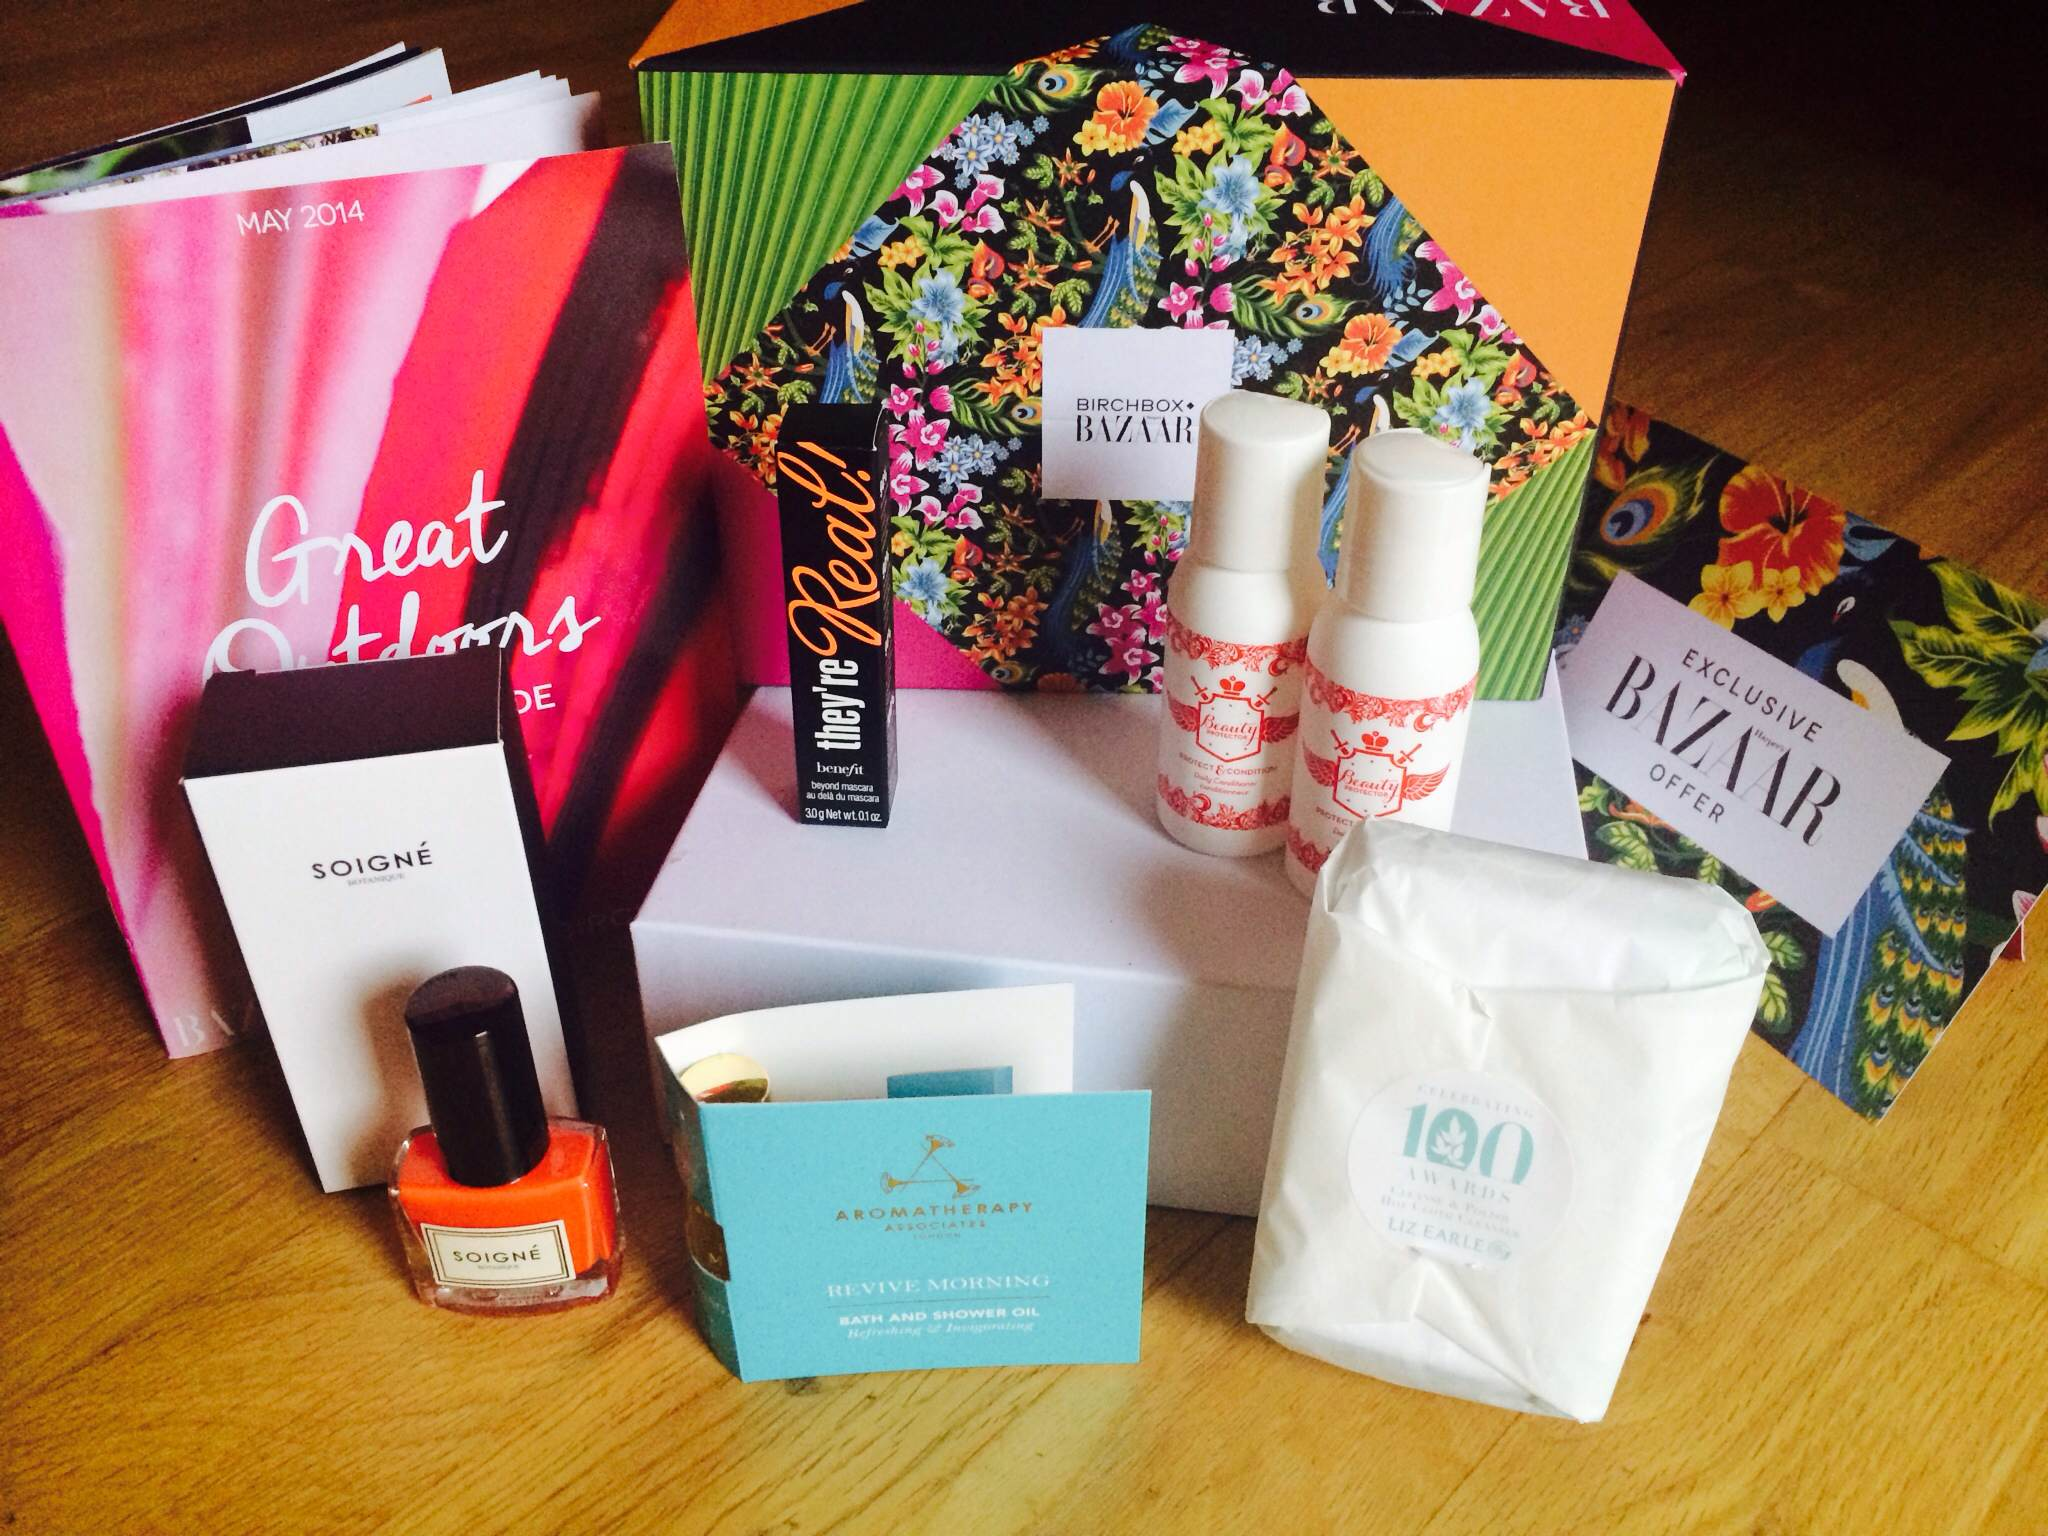 Harper's Bazaar do Birchbox this May